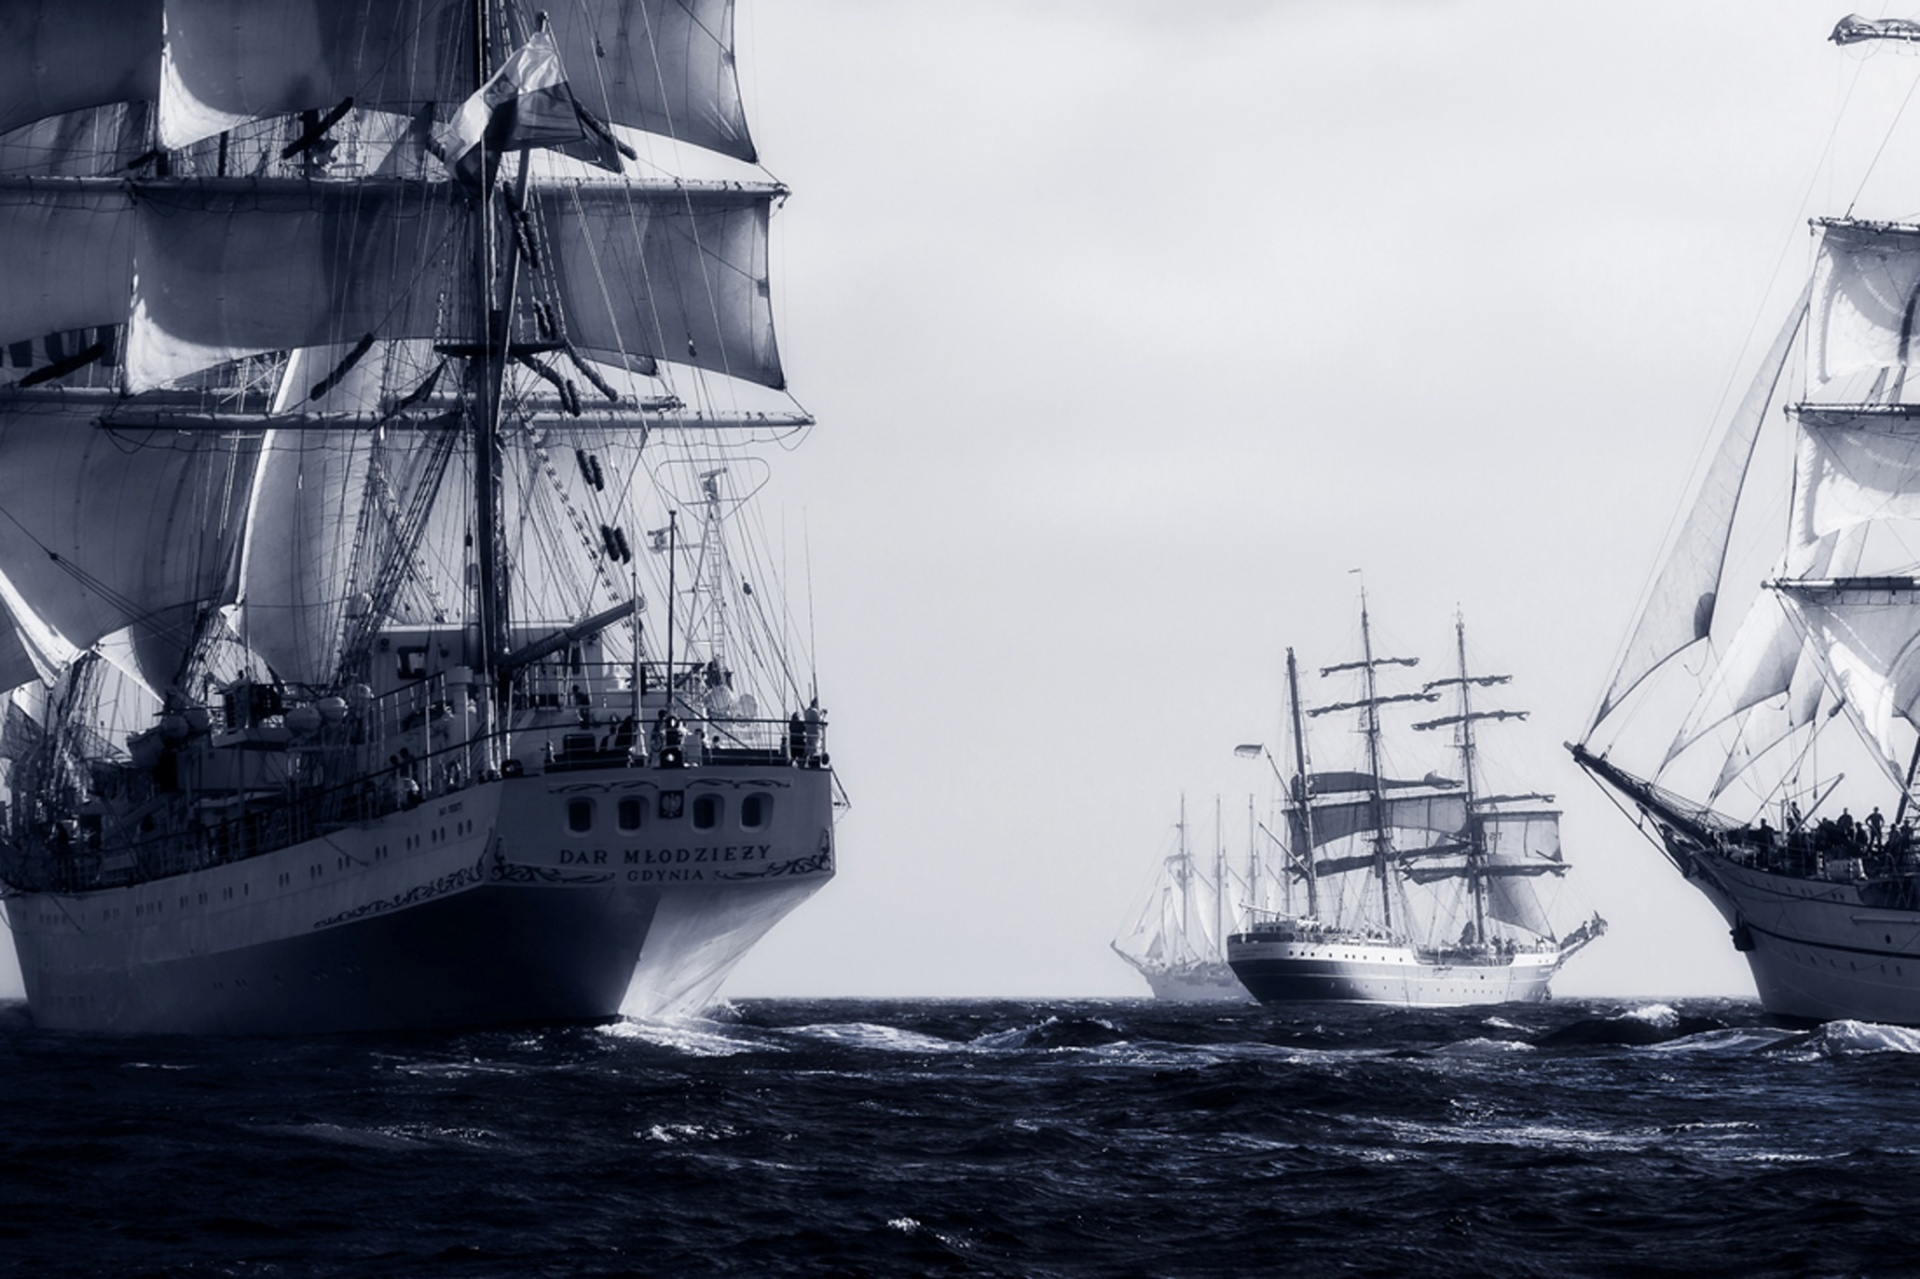 Spirit of Adventure, commended, Gonçalo Barriga, Portugal Several tall ships at the starting line during the Tall Ships Races event off the coast of Cascais, Lisbon, Portugal Photograph: Gonçalo Barriga/TPOTY